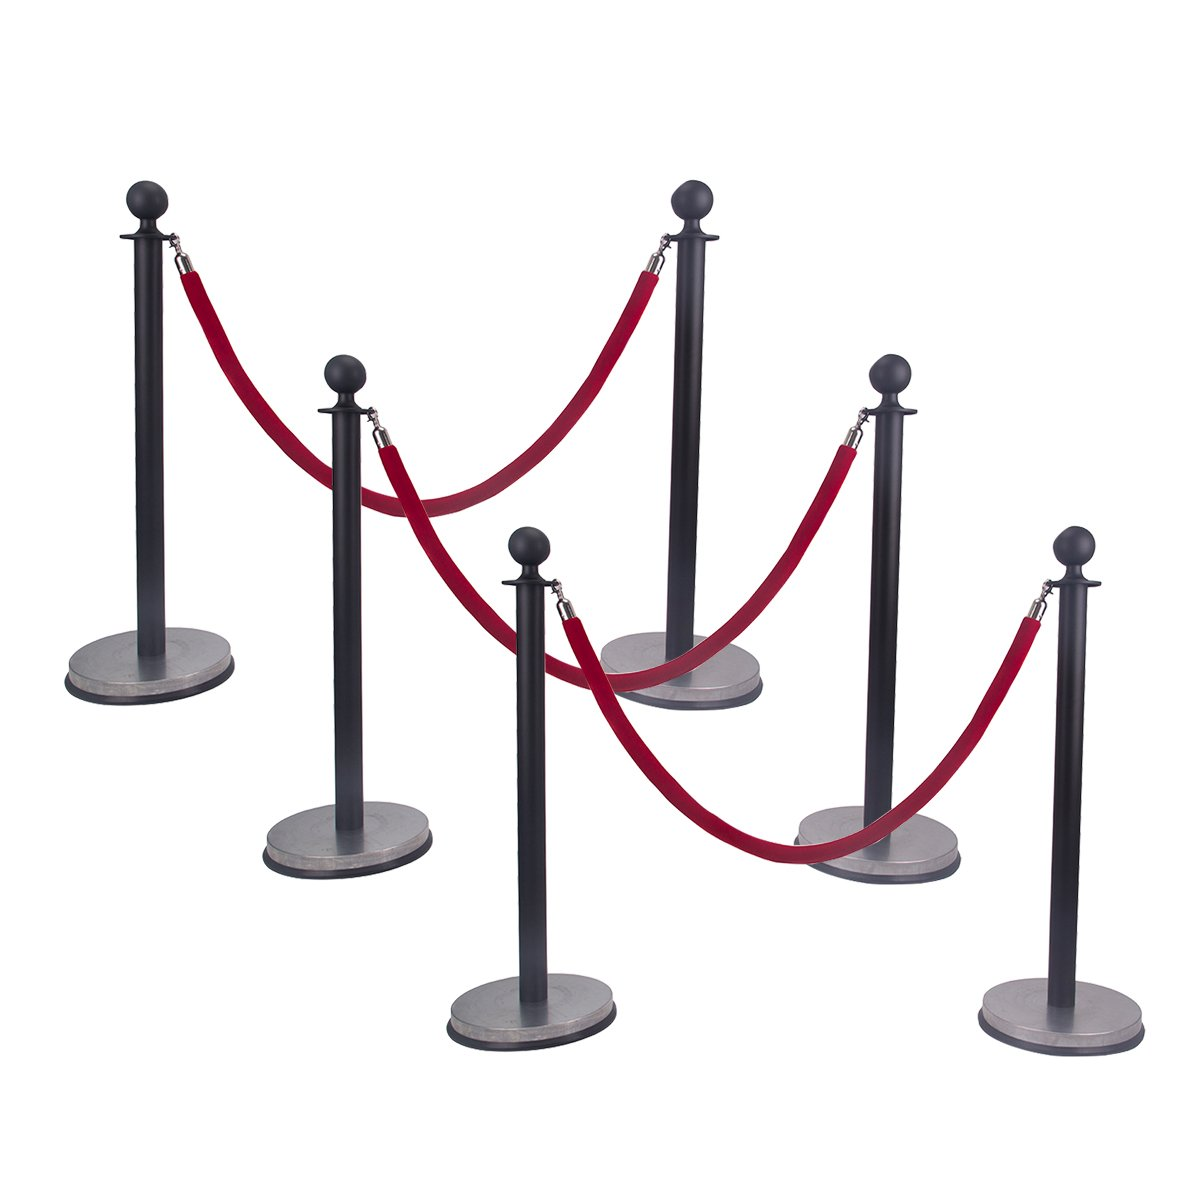 Ball Top Stainless Steel Retractable Stanchion Posts with a Red Velvet Rope Black (6)